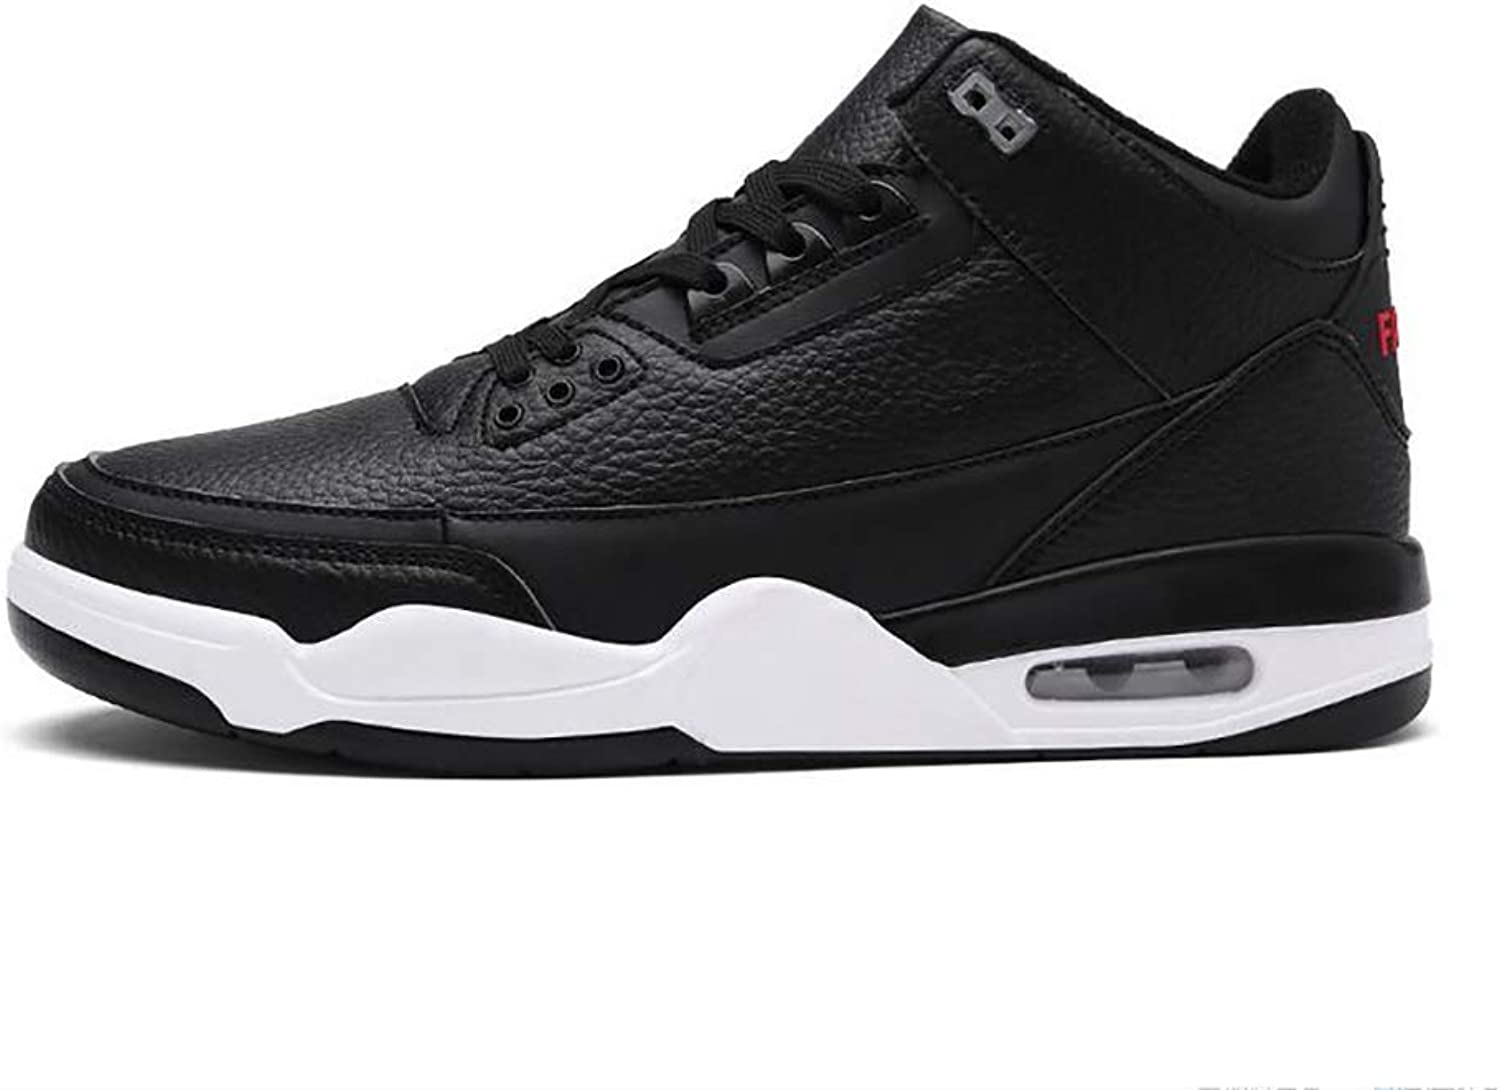 Y-H Men's Casual shoes Microfiber Leather Spring Fall Comfort Sneakers Men's Air-cushion Large Size Basketball shoes Student Slip-Ons Running shoes Black White Black White bluee